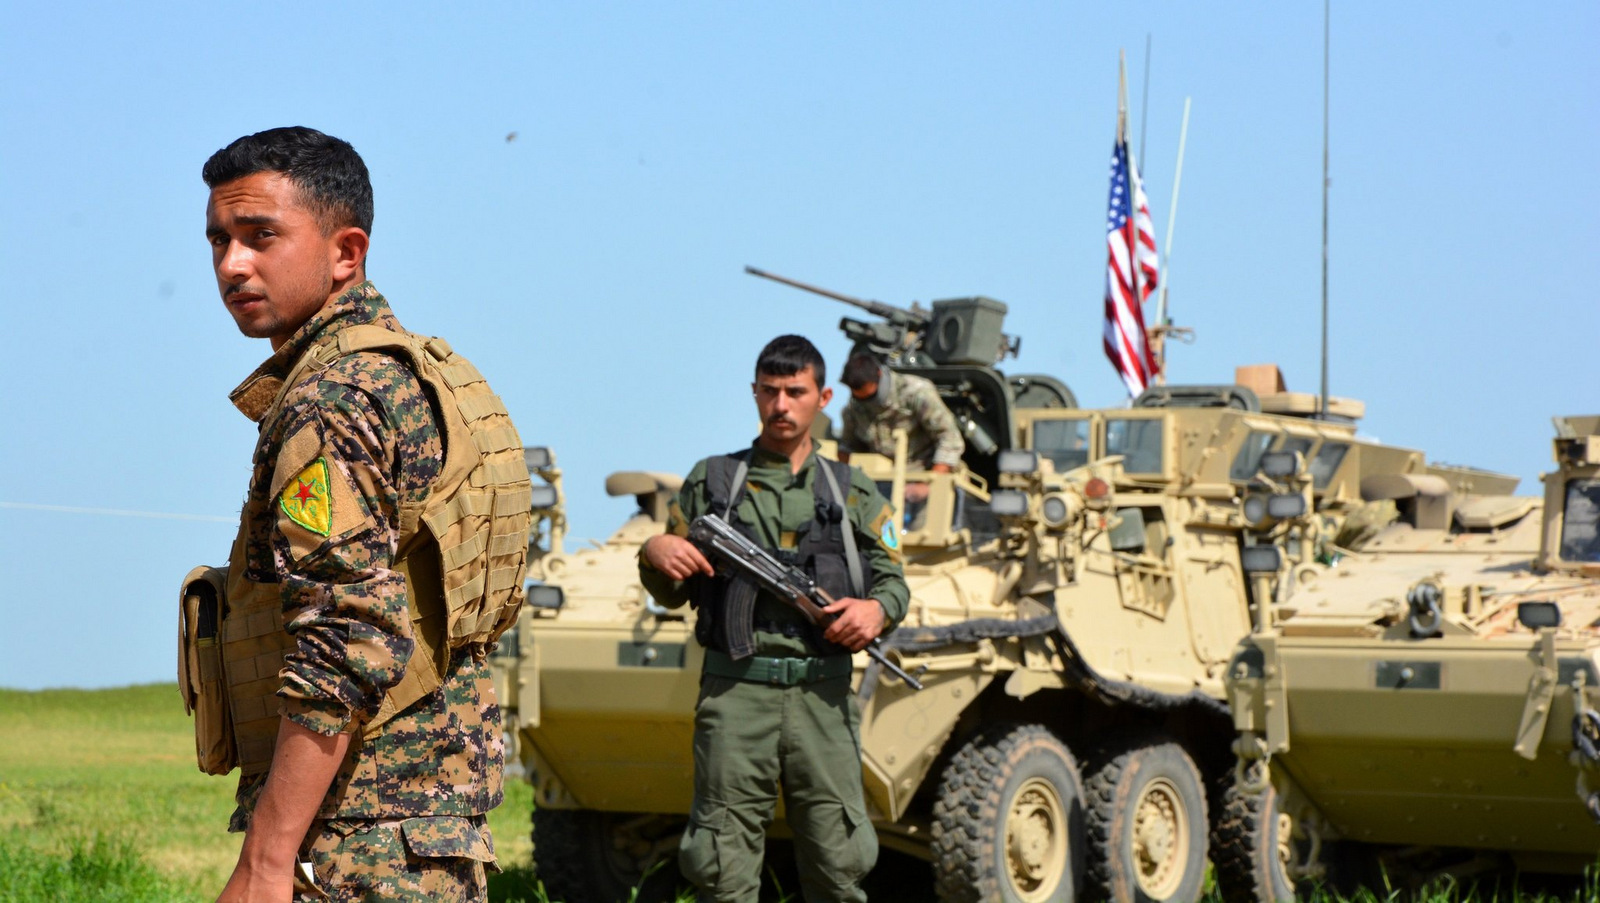 Kurdish fighters from the People's Protection Units, (Y.P.G), stand guard next to American armored vehicles at the Syria-Turkey border, Apri, 2017. (Youssef Rabie Youssef/EPA)